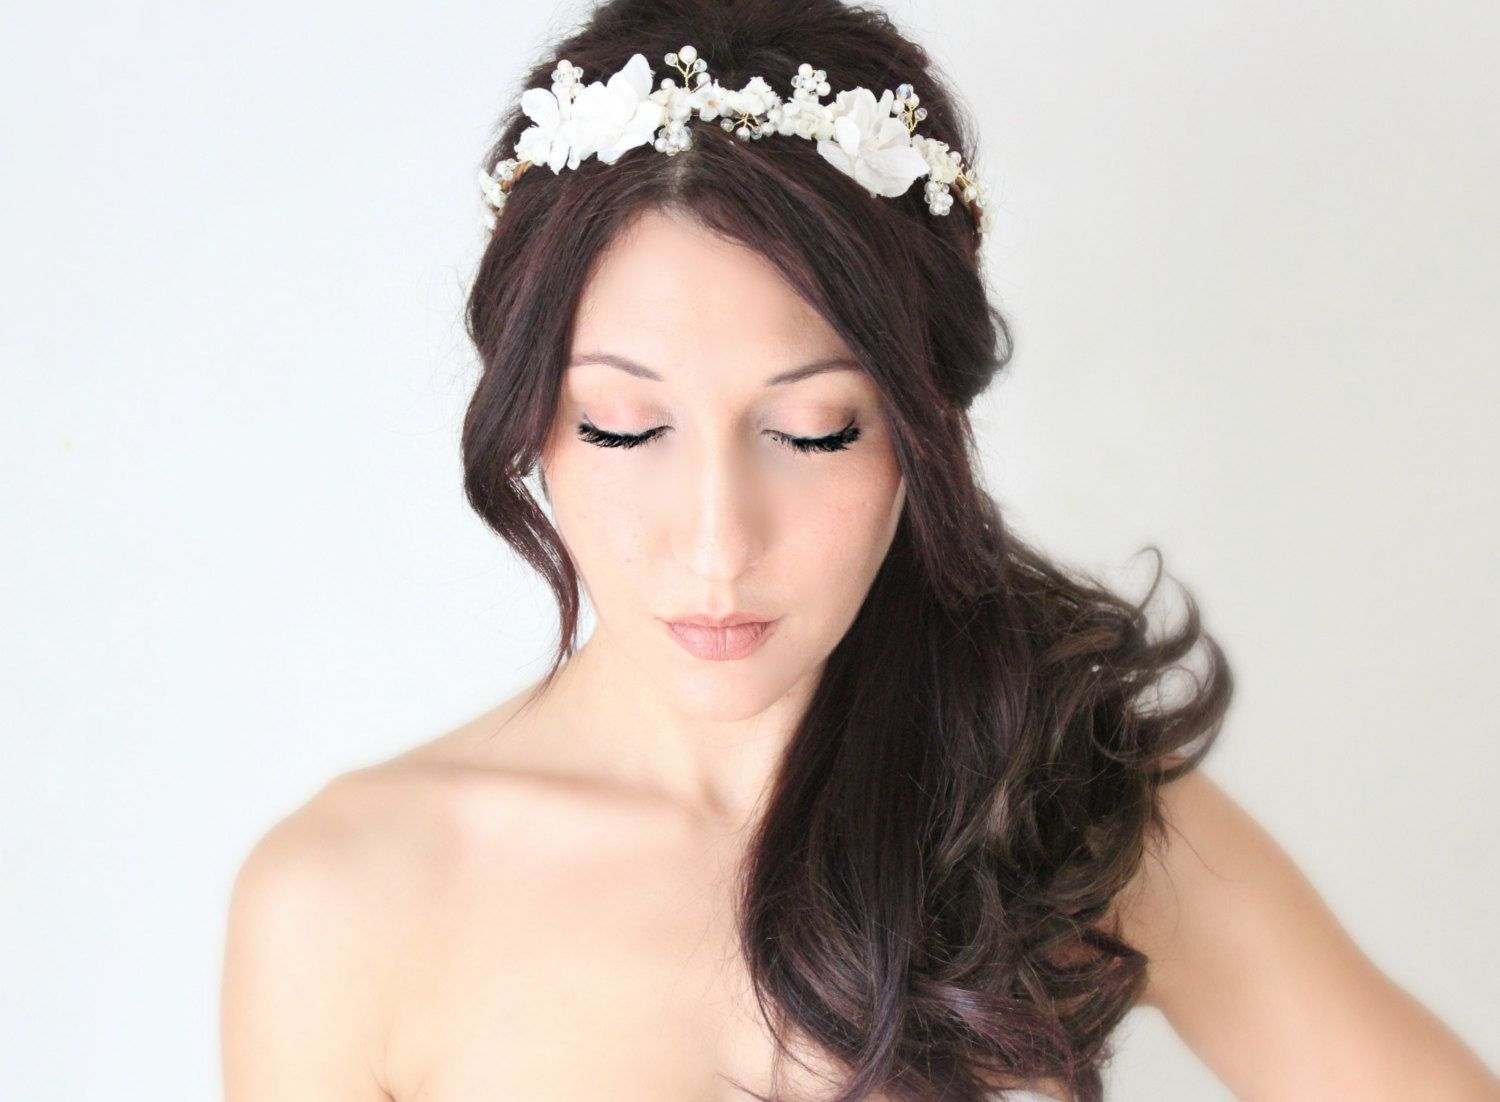 Wedding Flower Crown, Crystals and Pearls, Bridal Tiara,  Hair Flower Soft White Bridal Tiara - ISLA. $100.00, via Etsy.